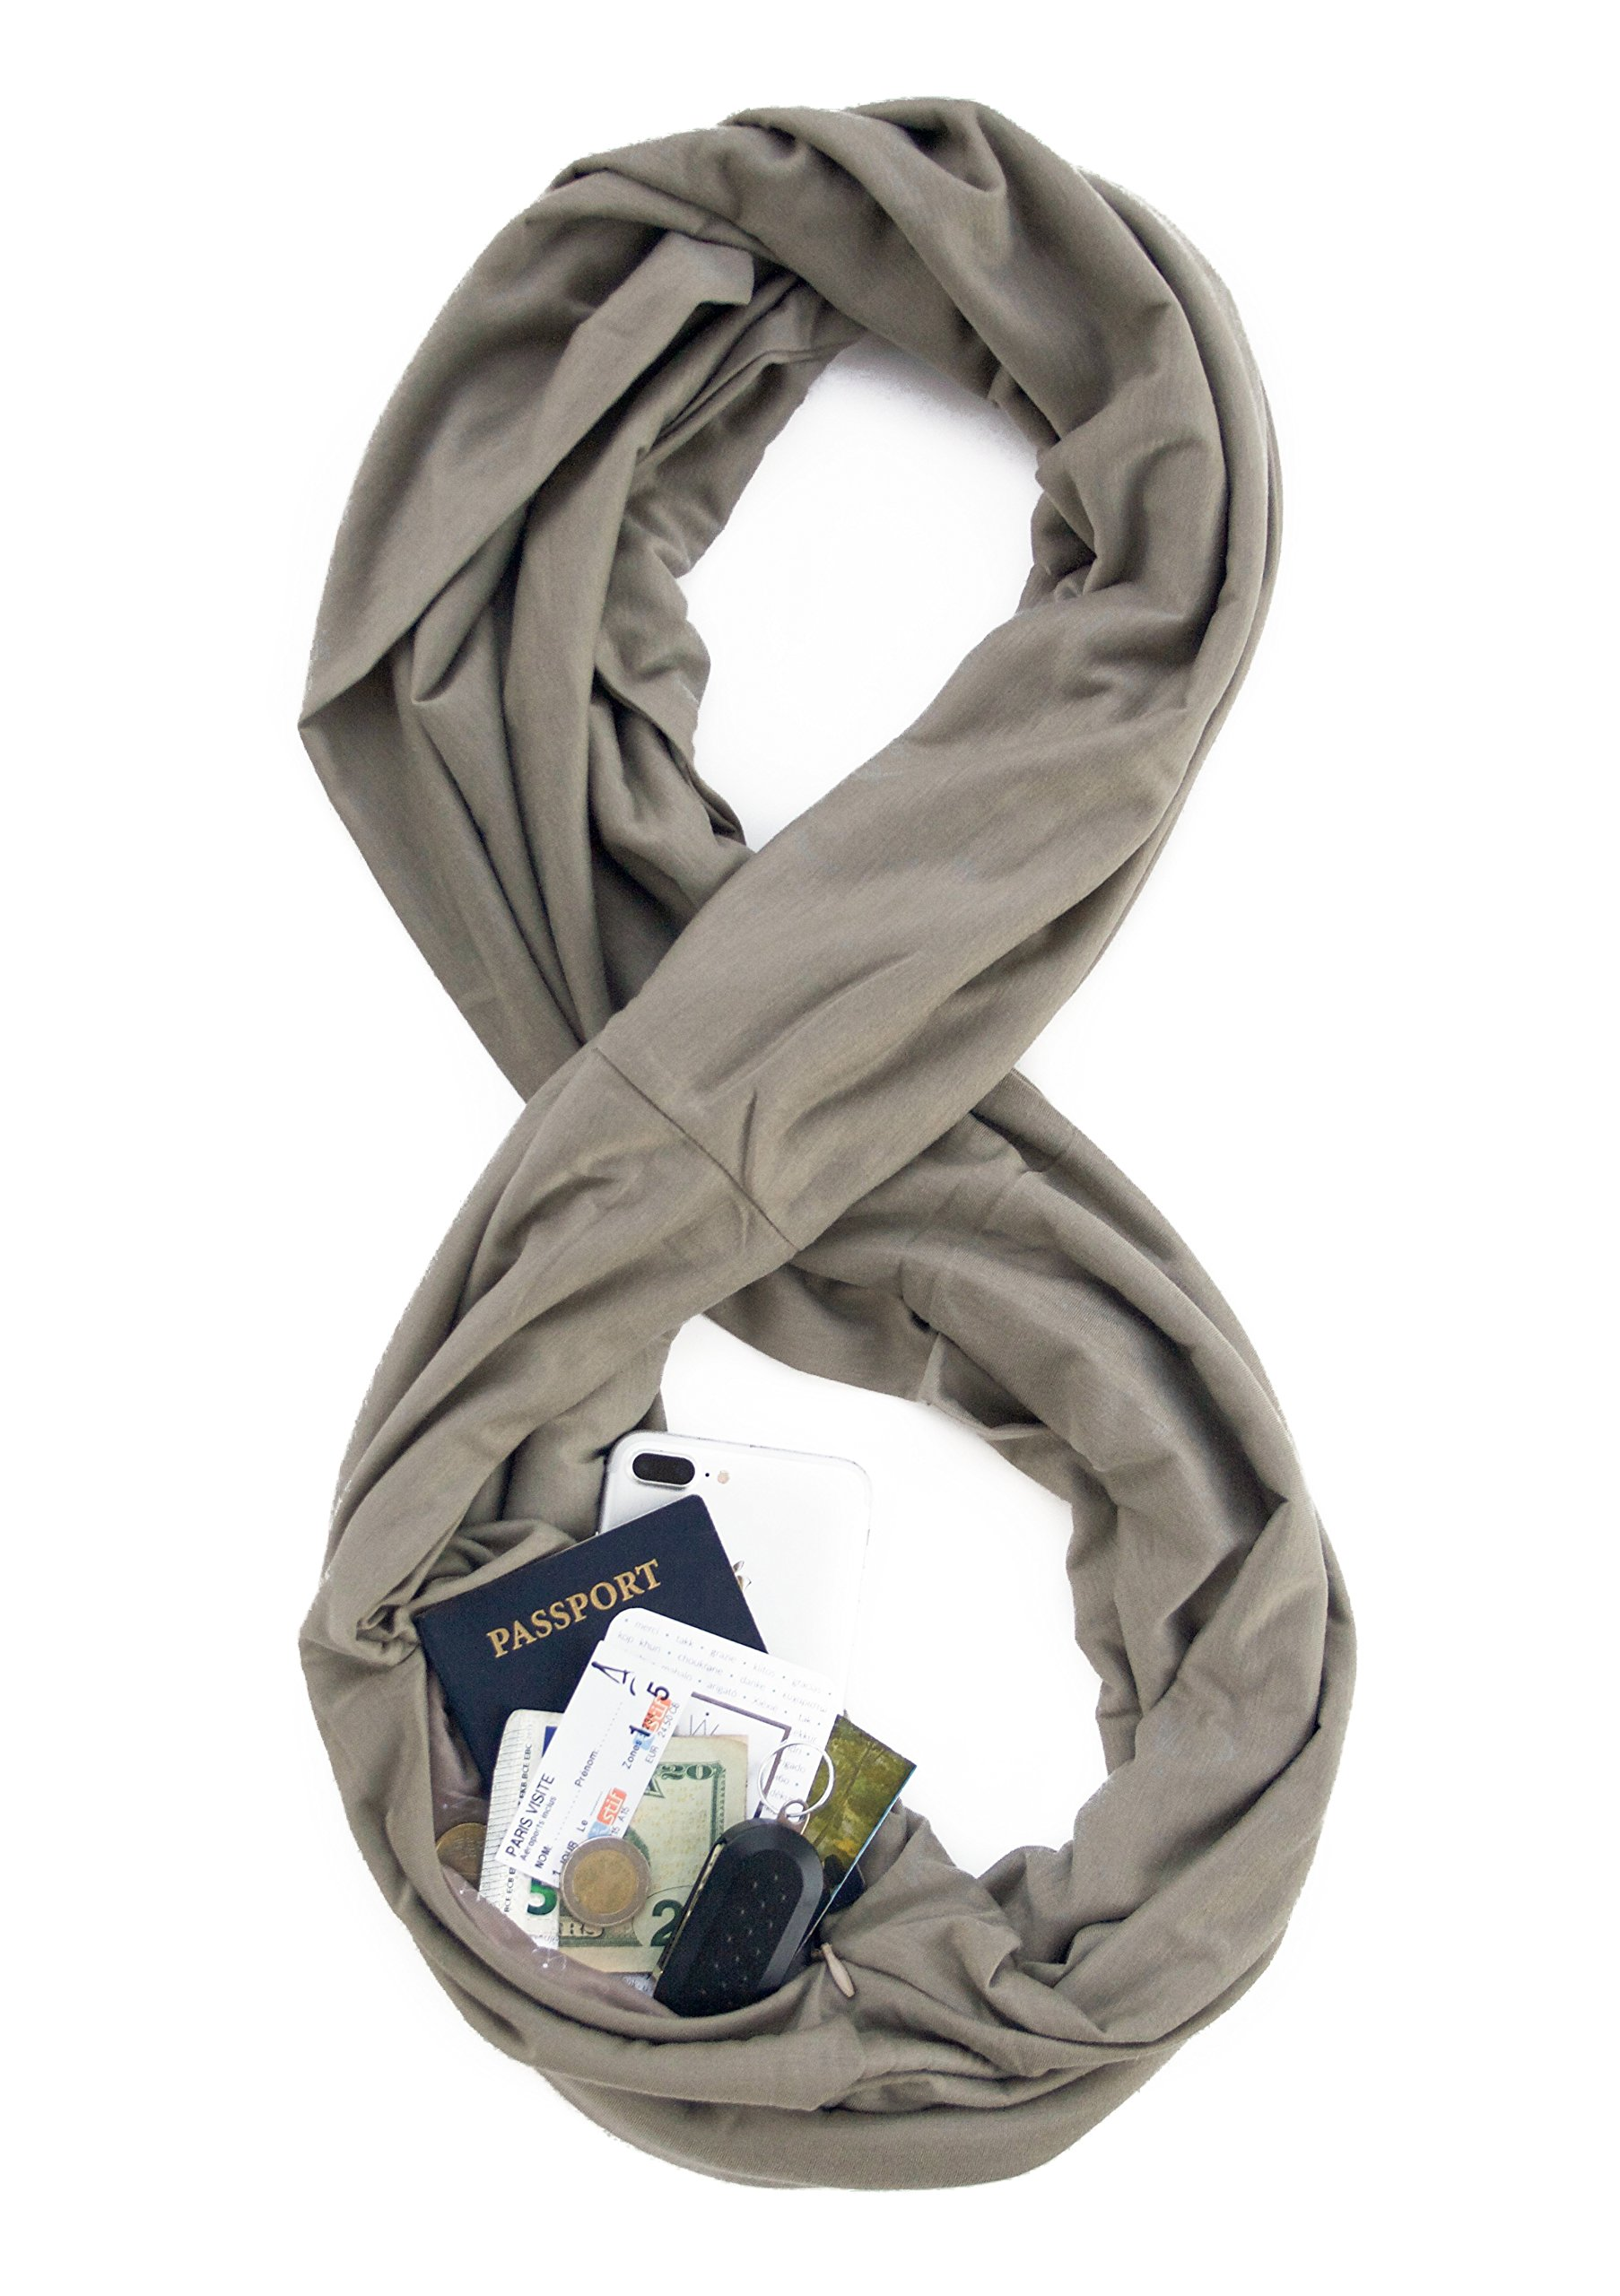 TRAVEL SCARF by WAYPOINT GOODS//Infinity Scarf with Hidden Pocket (Greige)